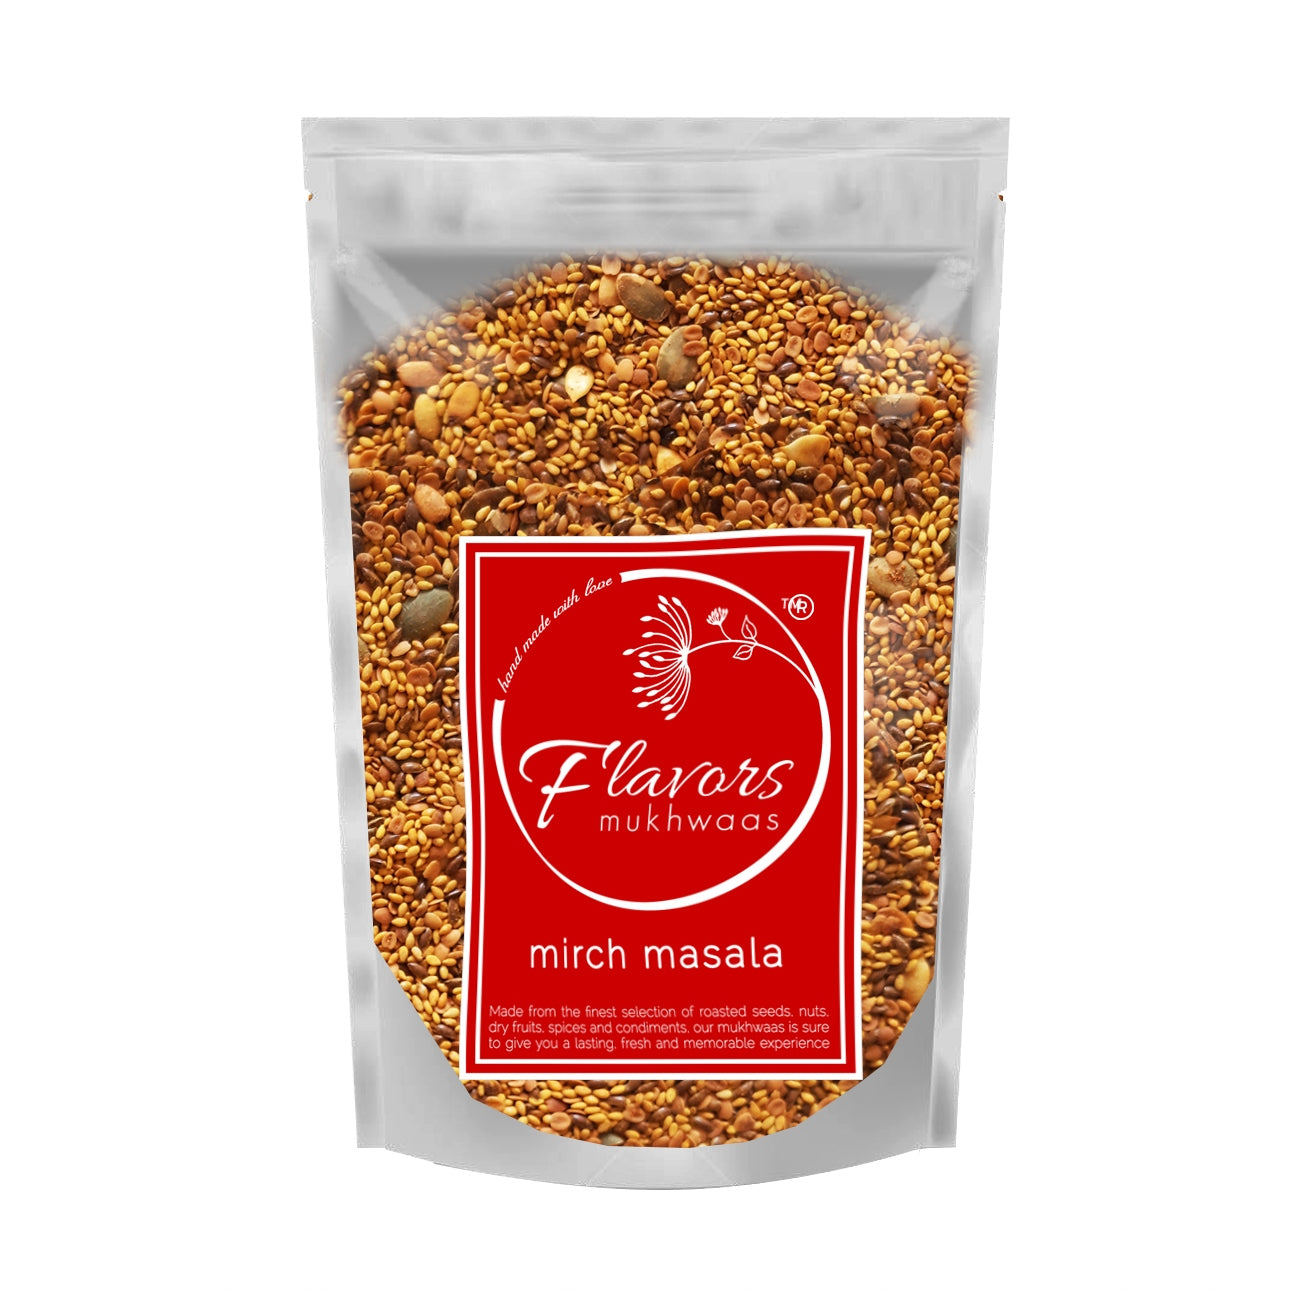 flavors mukhwaas mirch masala mukhwas mouth freshener digestive after meal snack front